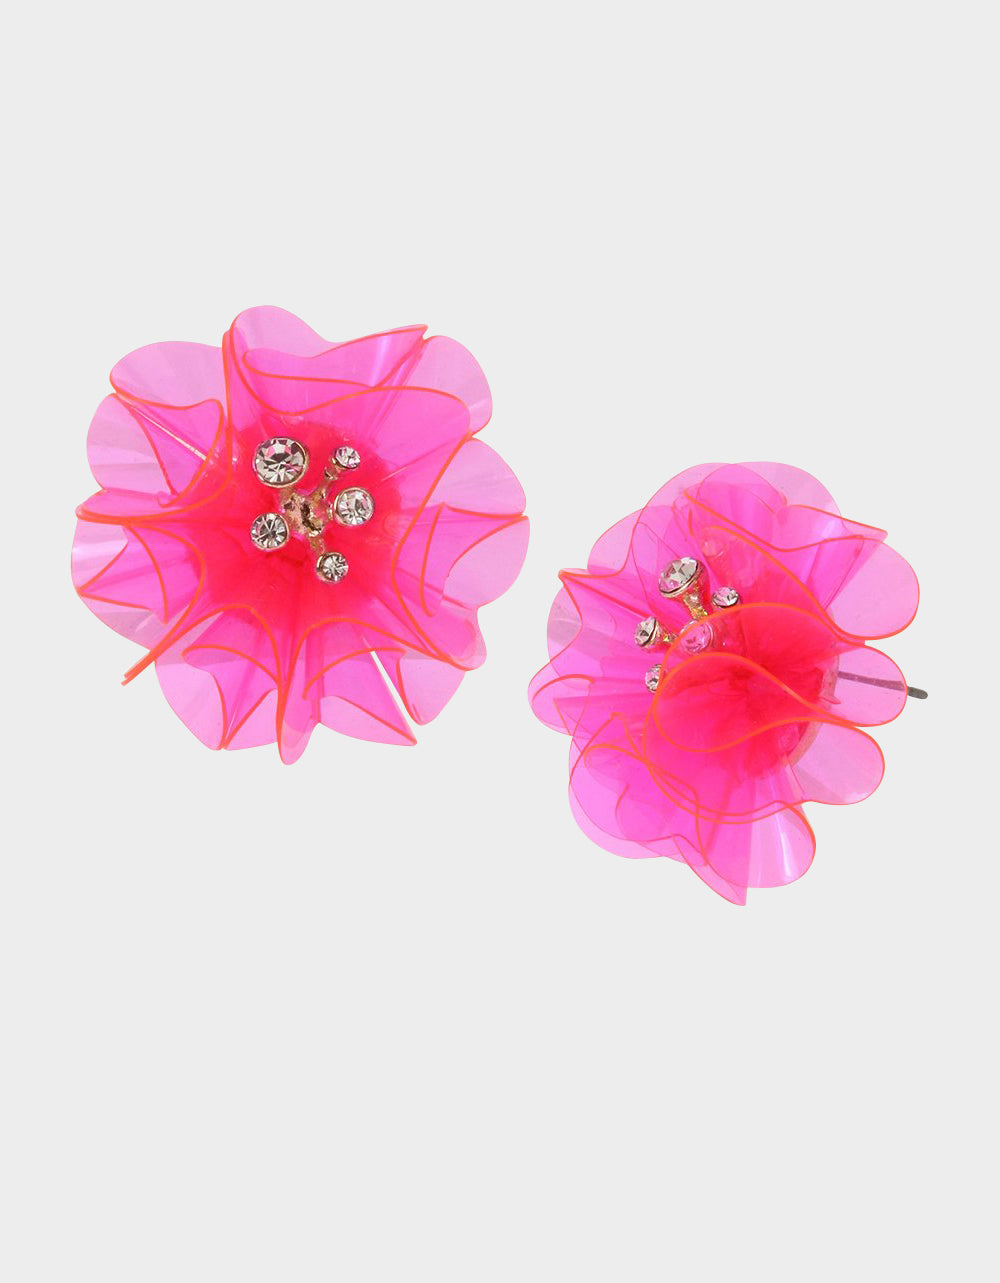 BEACH PARTY FLOWER BUTTON EARRINGS PINK - JEWELRY - Betsey Johnson